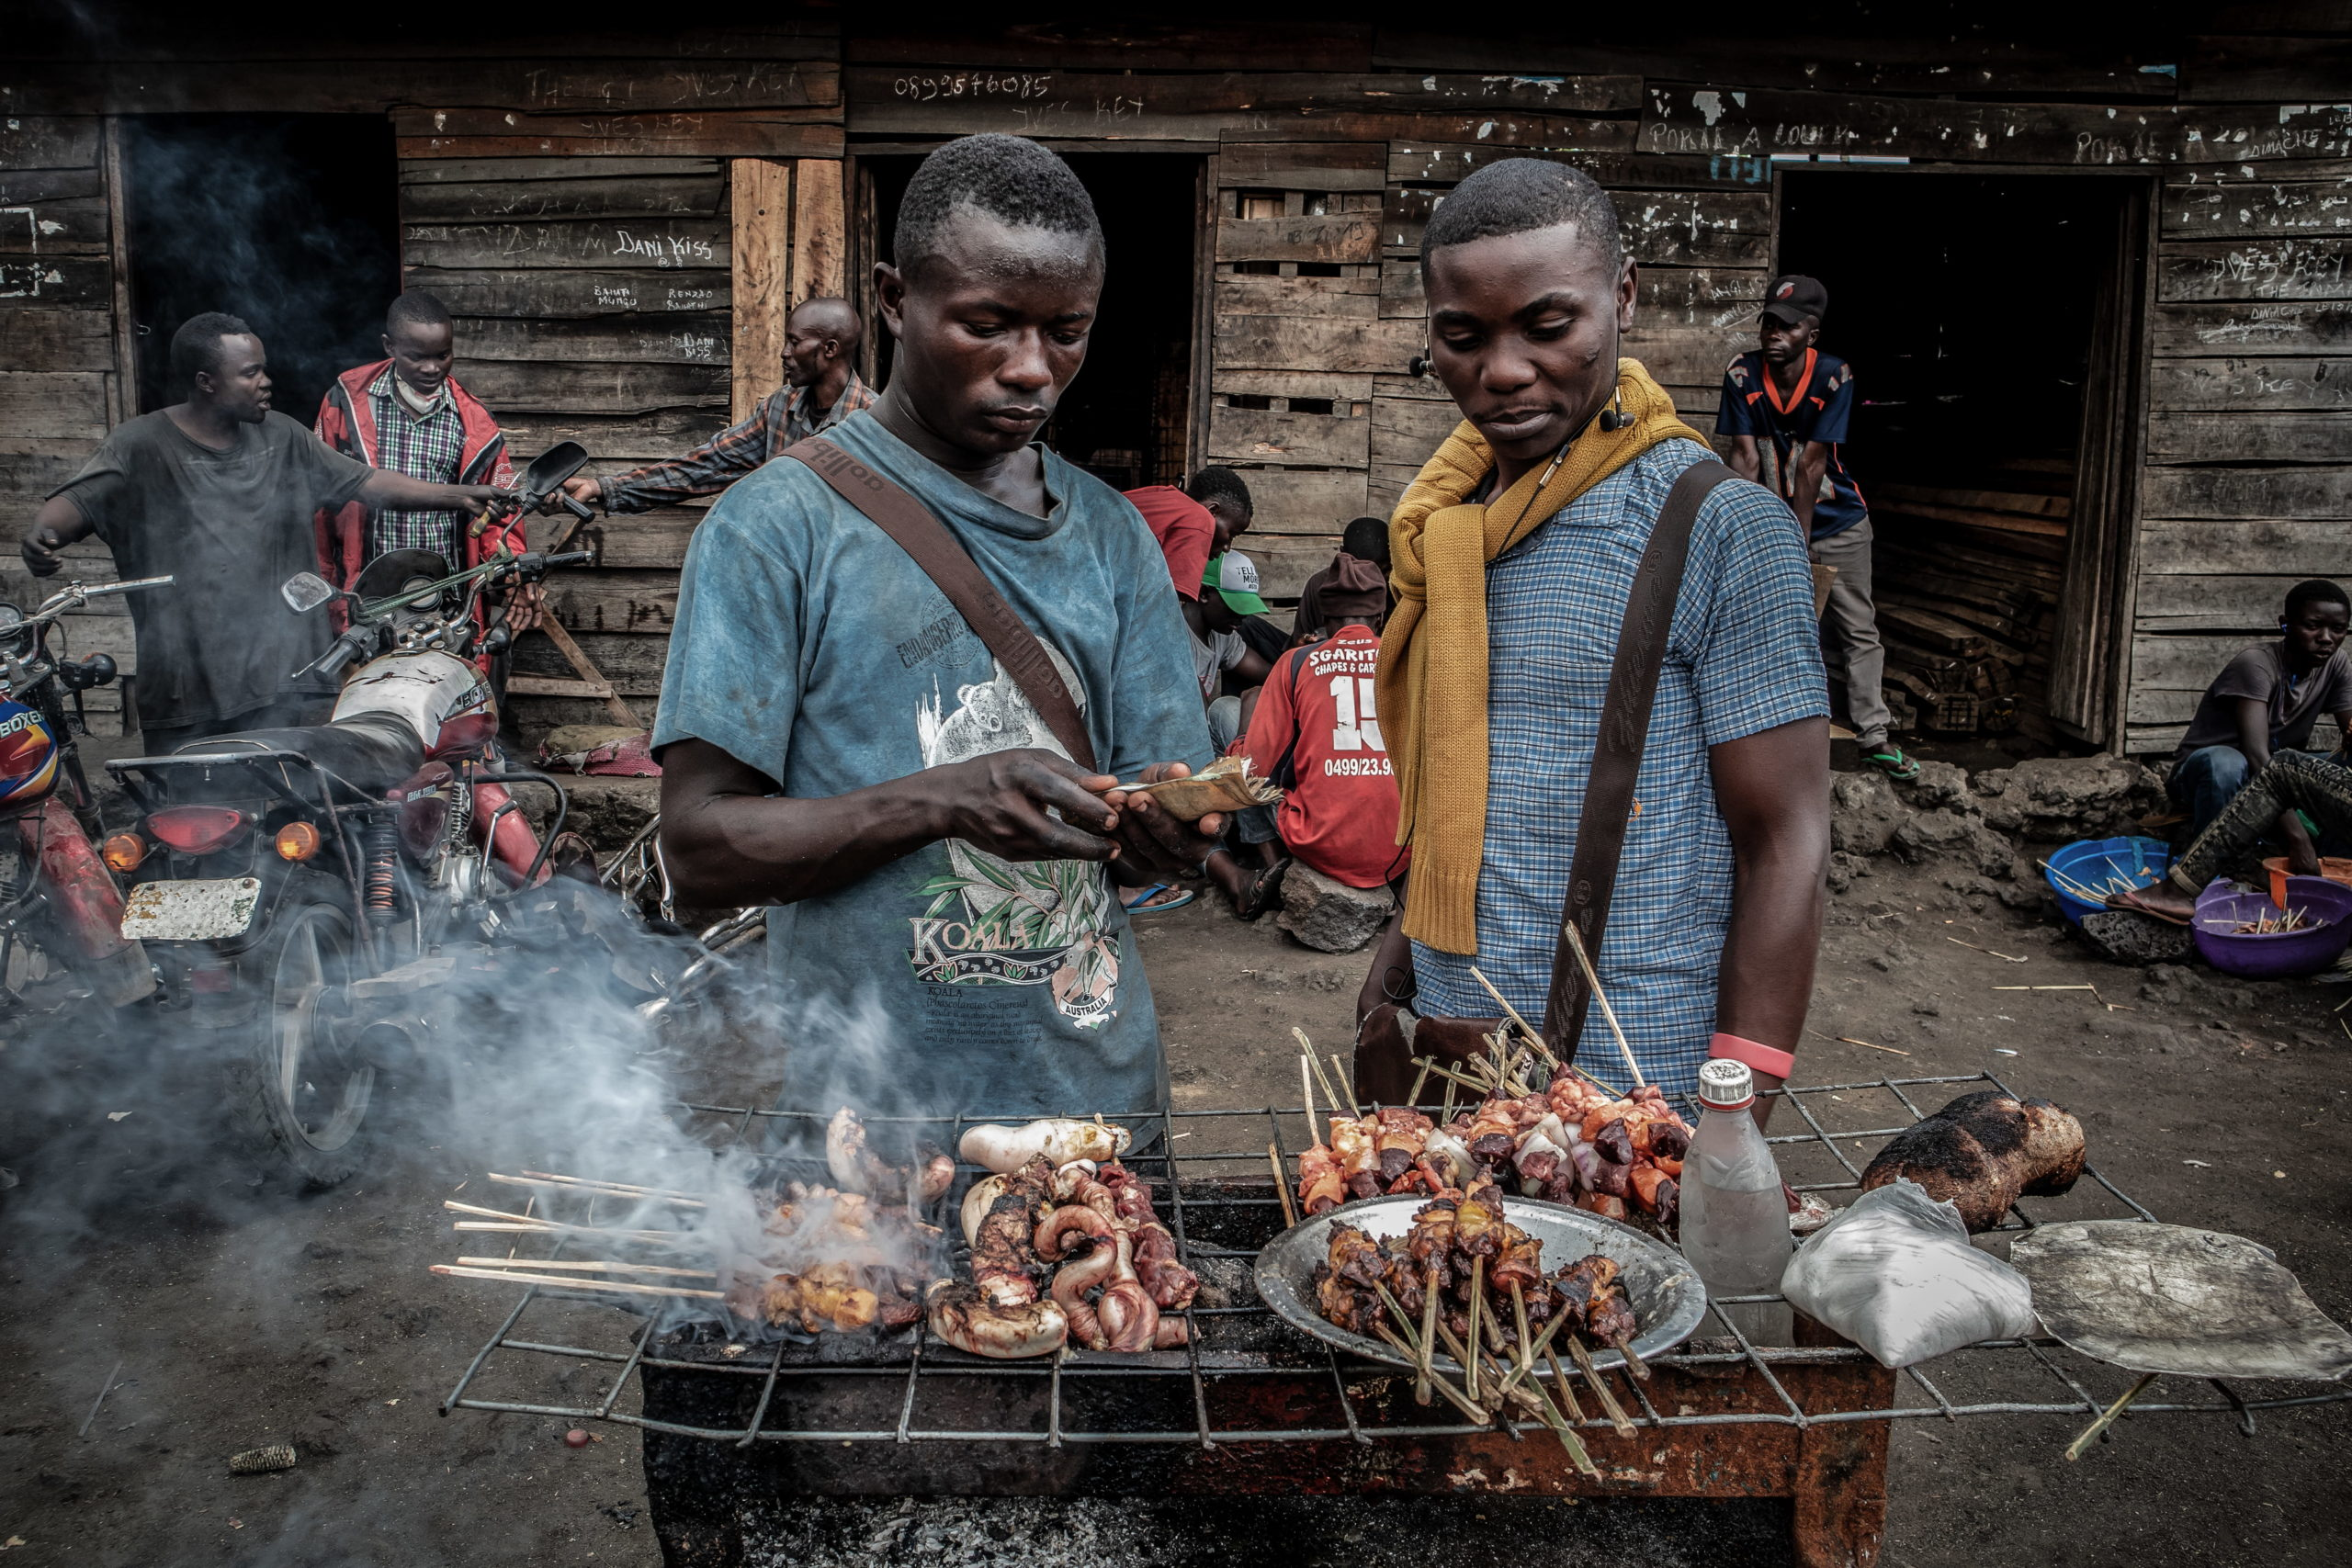 Goma surroundings, DRC, December 2020. Balume Benjamin, 19, (L), sells brochettes cooked on a charcoal grill on the roadside outside the eastern Congolese city of Goma. © Guerchom Ndebo for Fondation Carmignac